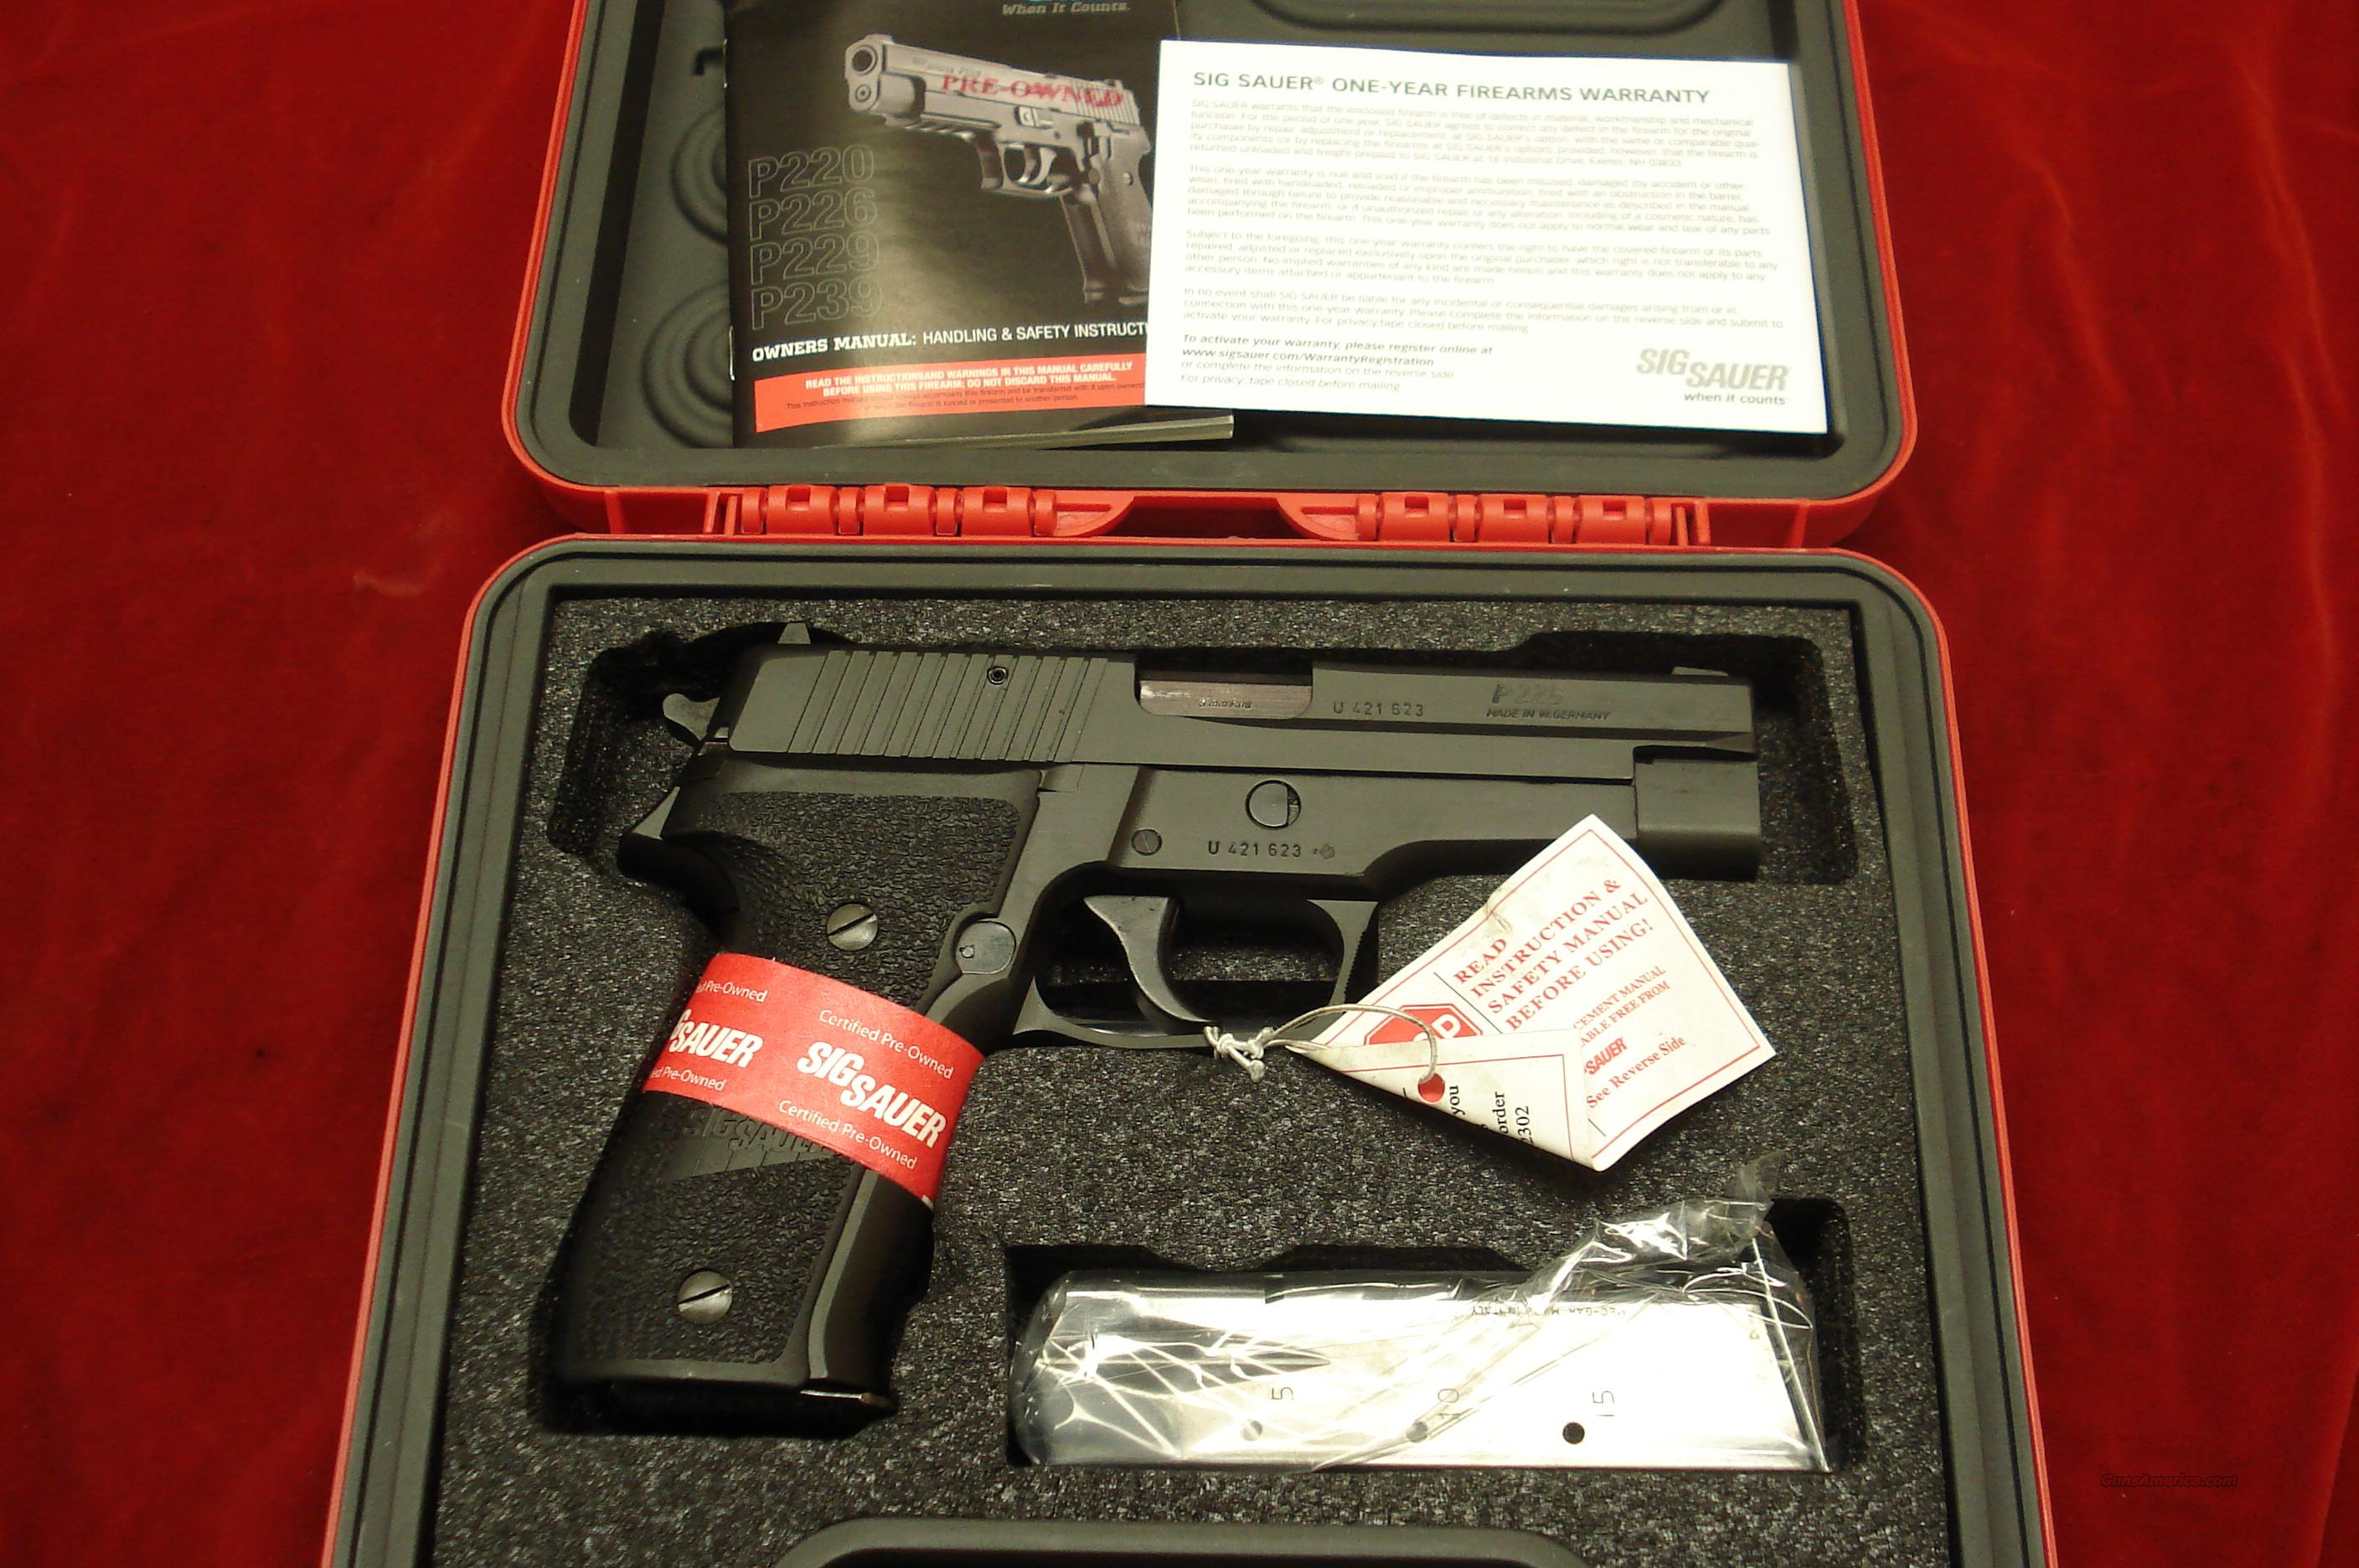 SIG SAUER P226 DAO 9MM CERTIFIED PREOWNED   Guns > Pistols > Sig - Sauer/Sigarms Pistols > P226